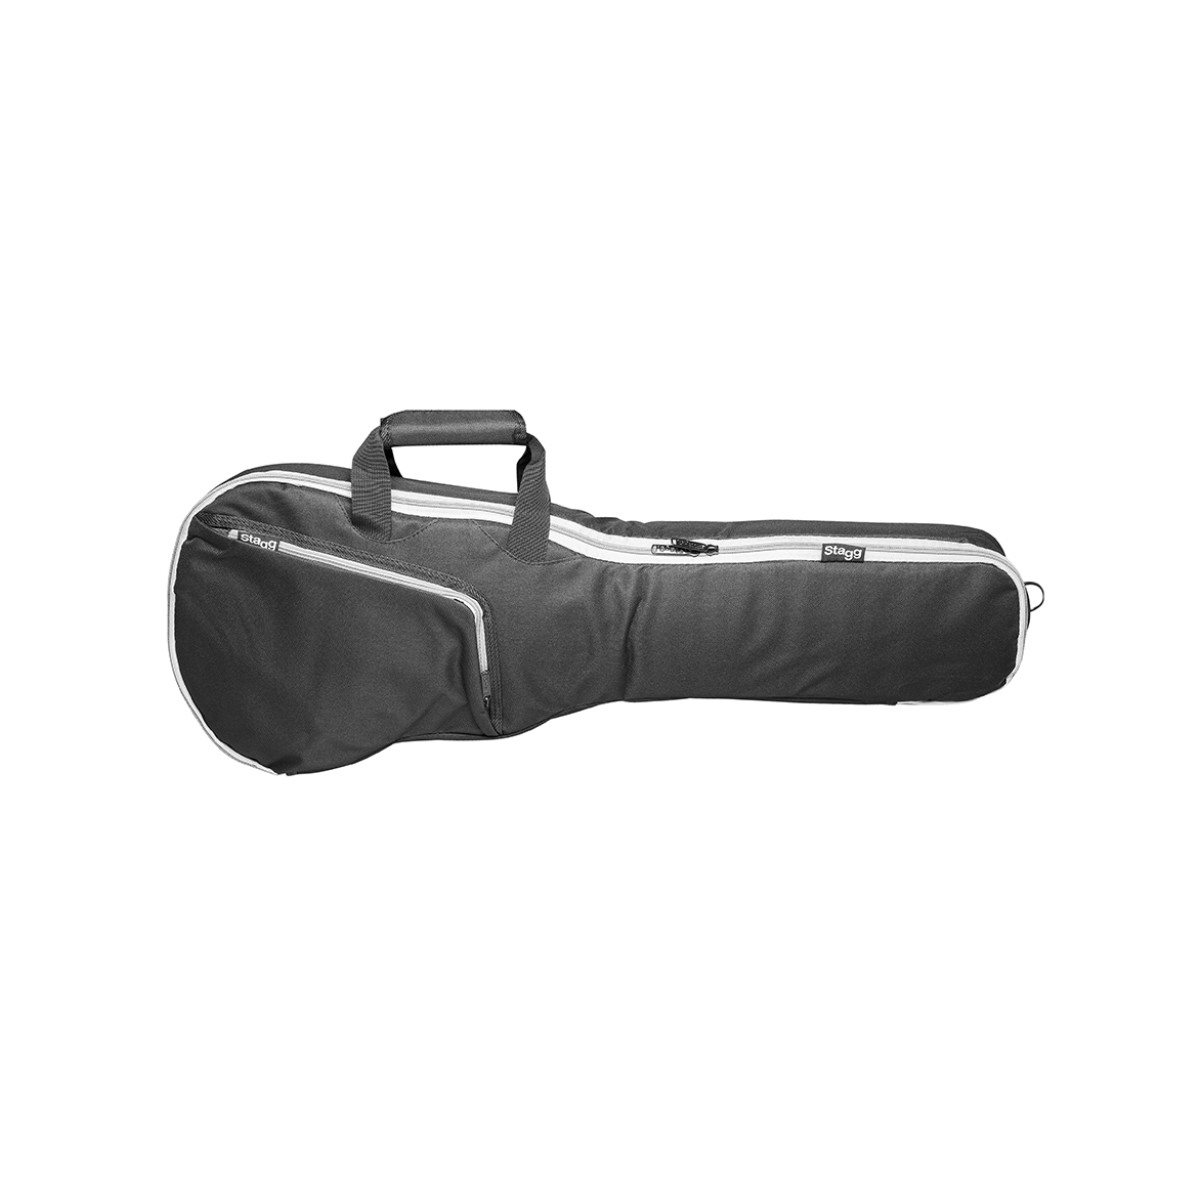 STAGG - STB-10-C1 - Nylon bag for 1 / 4 classical guitar